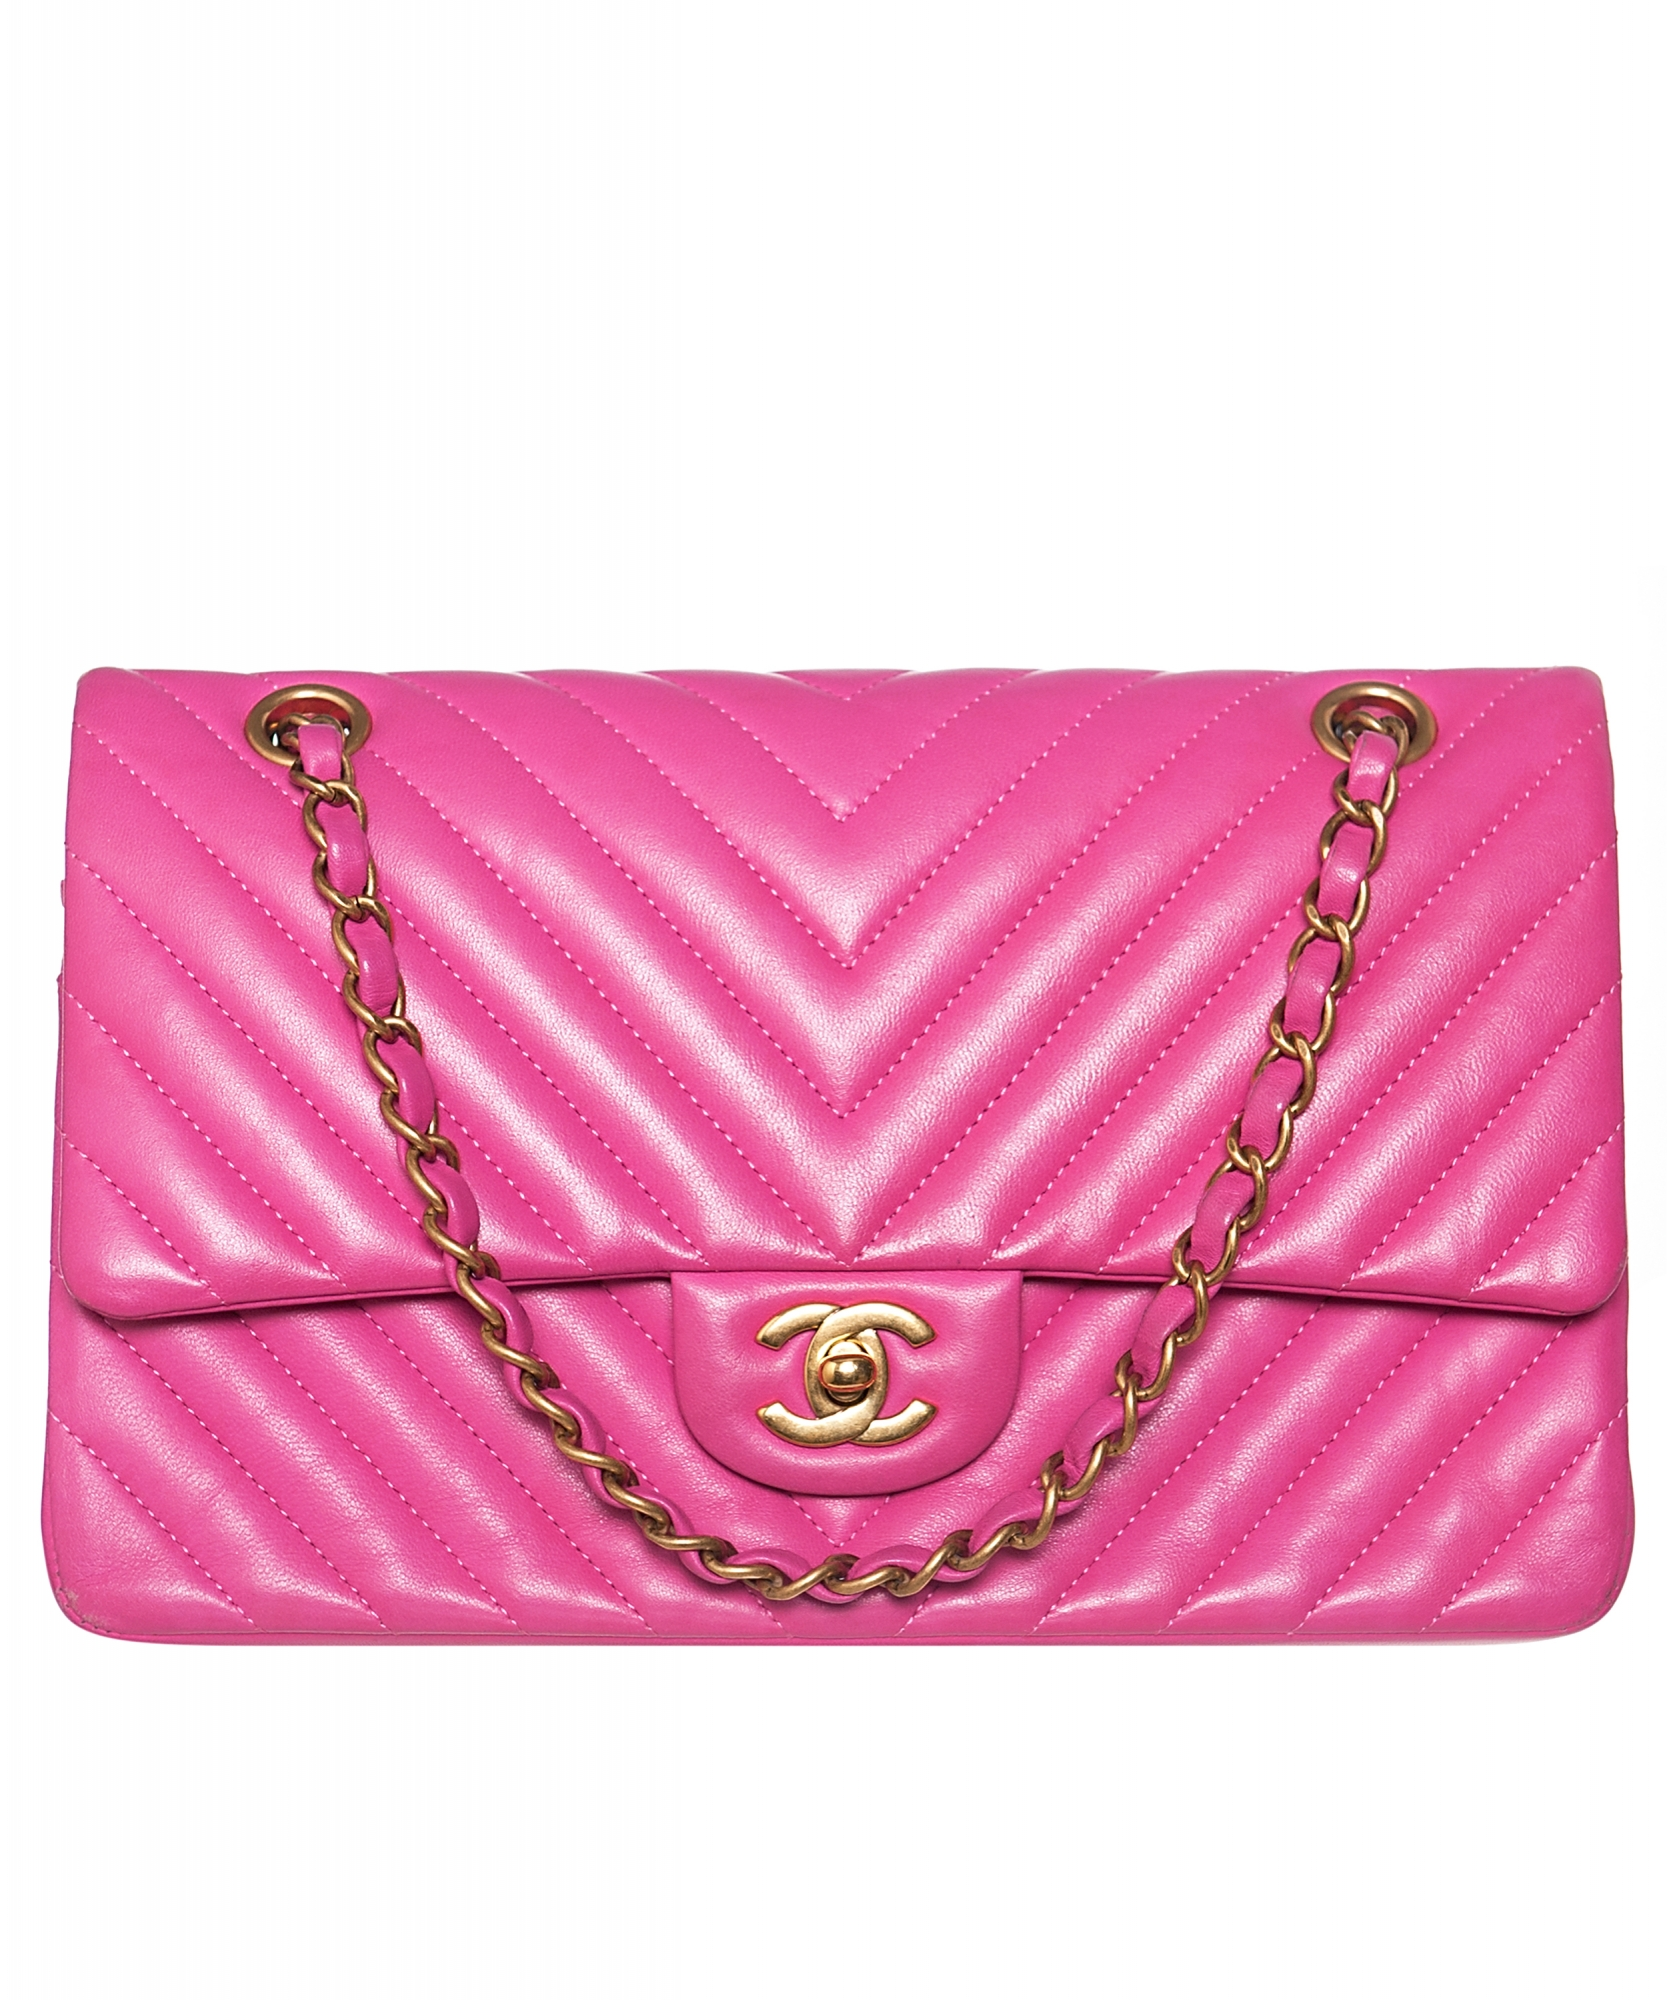 94202422ab ... Chanel Pink Quilted Chevron Leather Classic Medium Double Flap Bag.  Touch to zoom